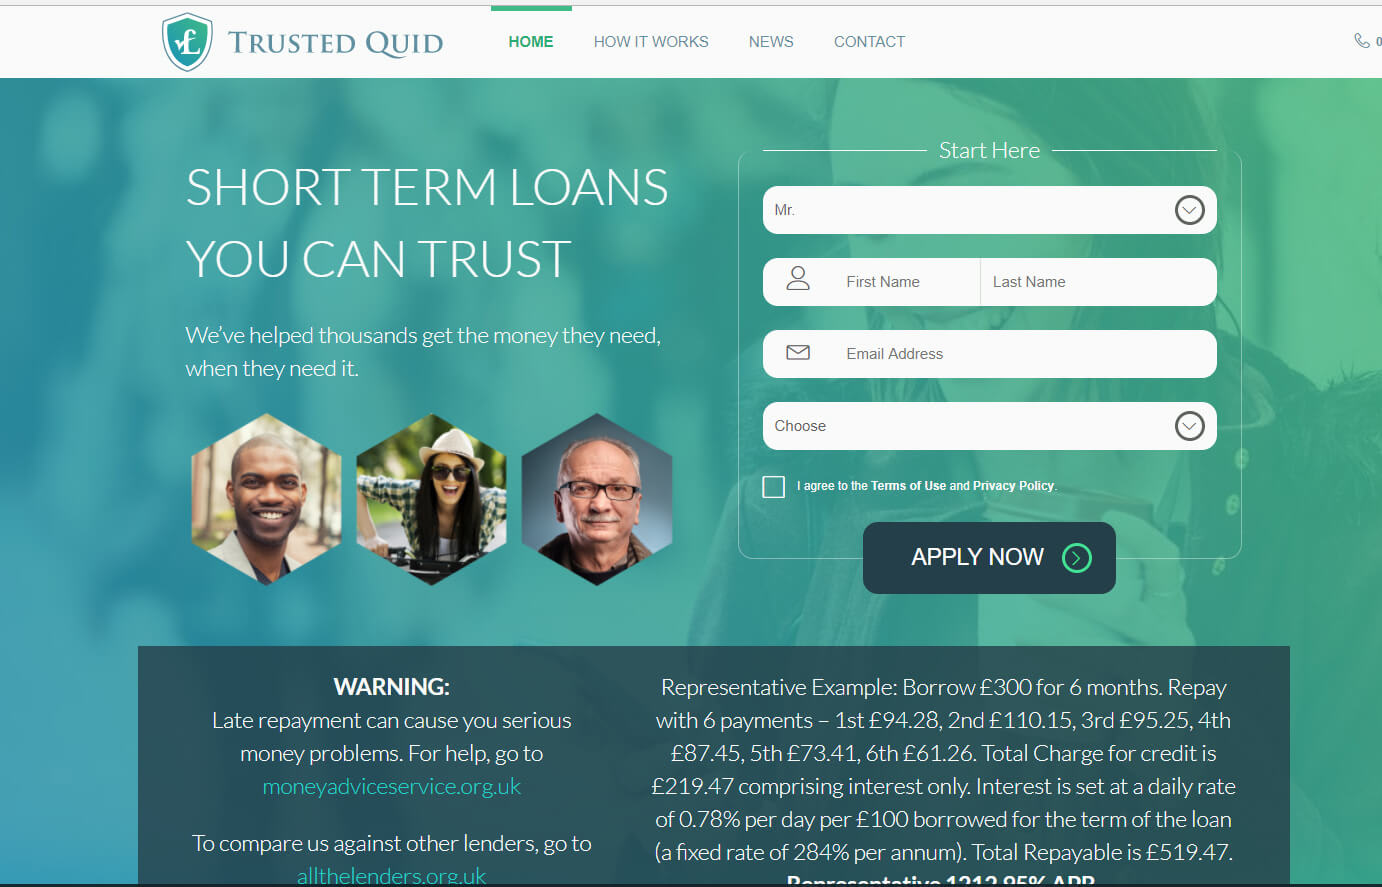 Who are Trusted Quid?